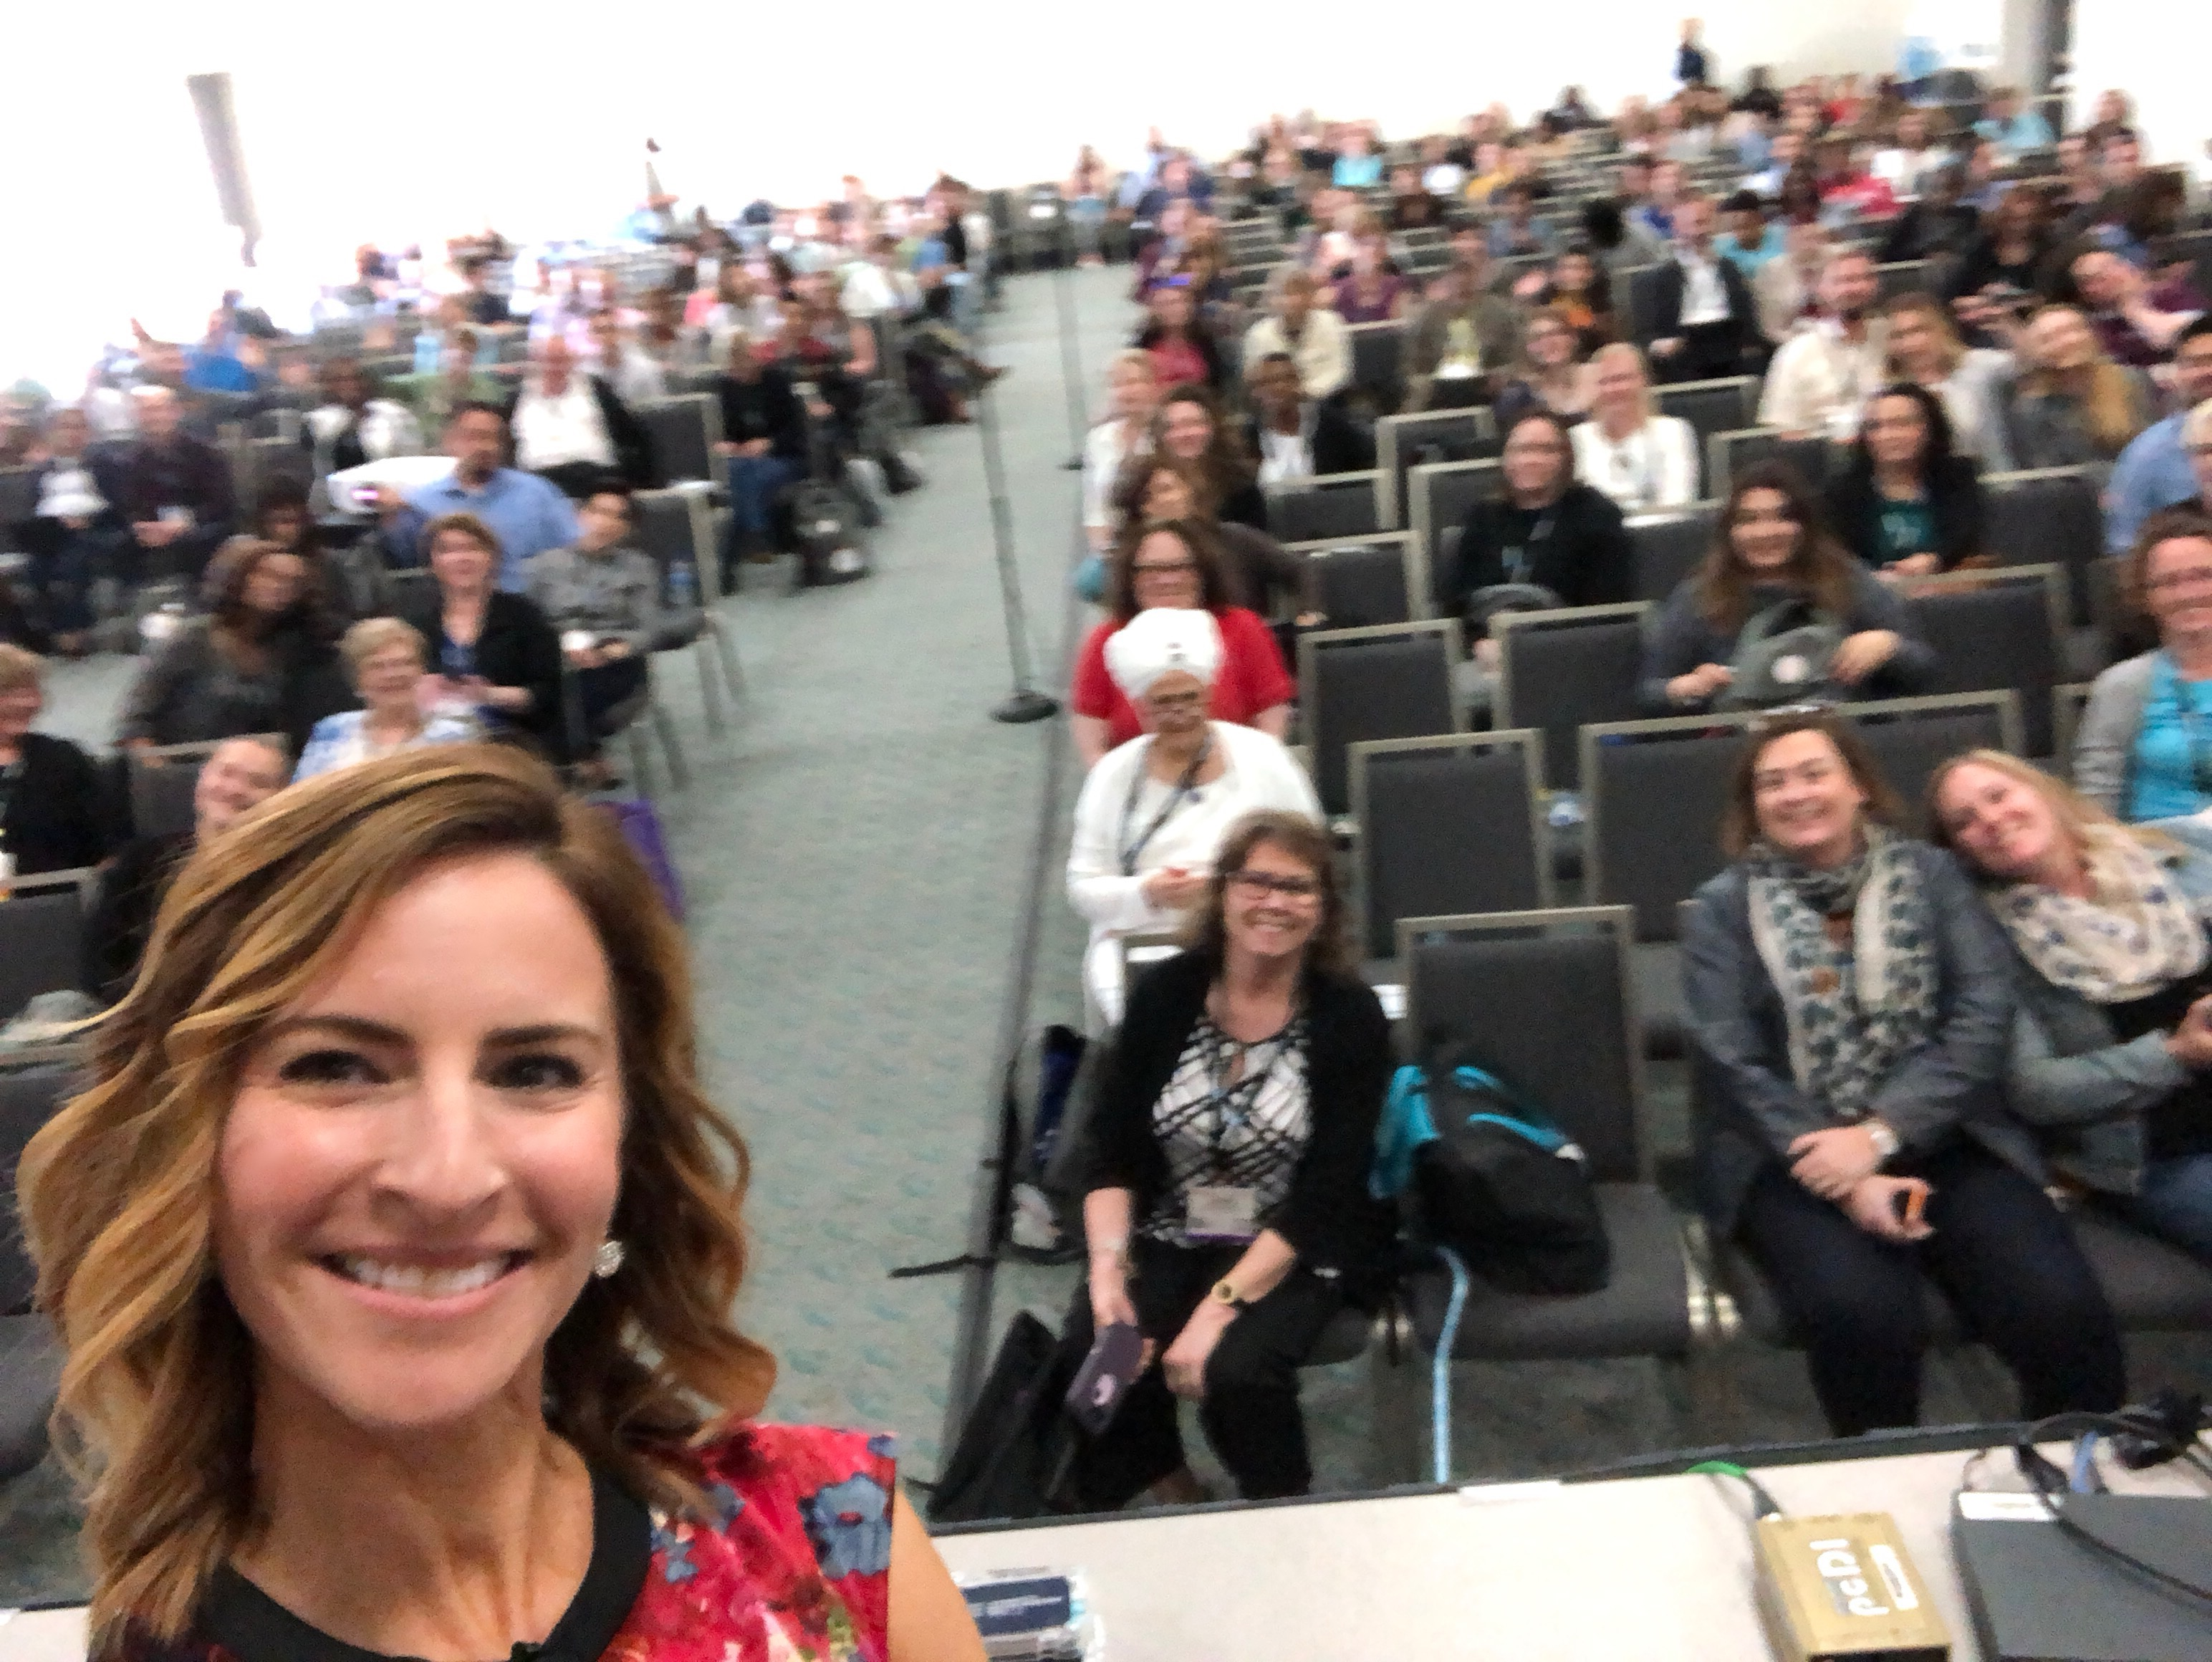 Janine selfie on stage at ATD 2018